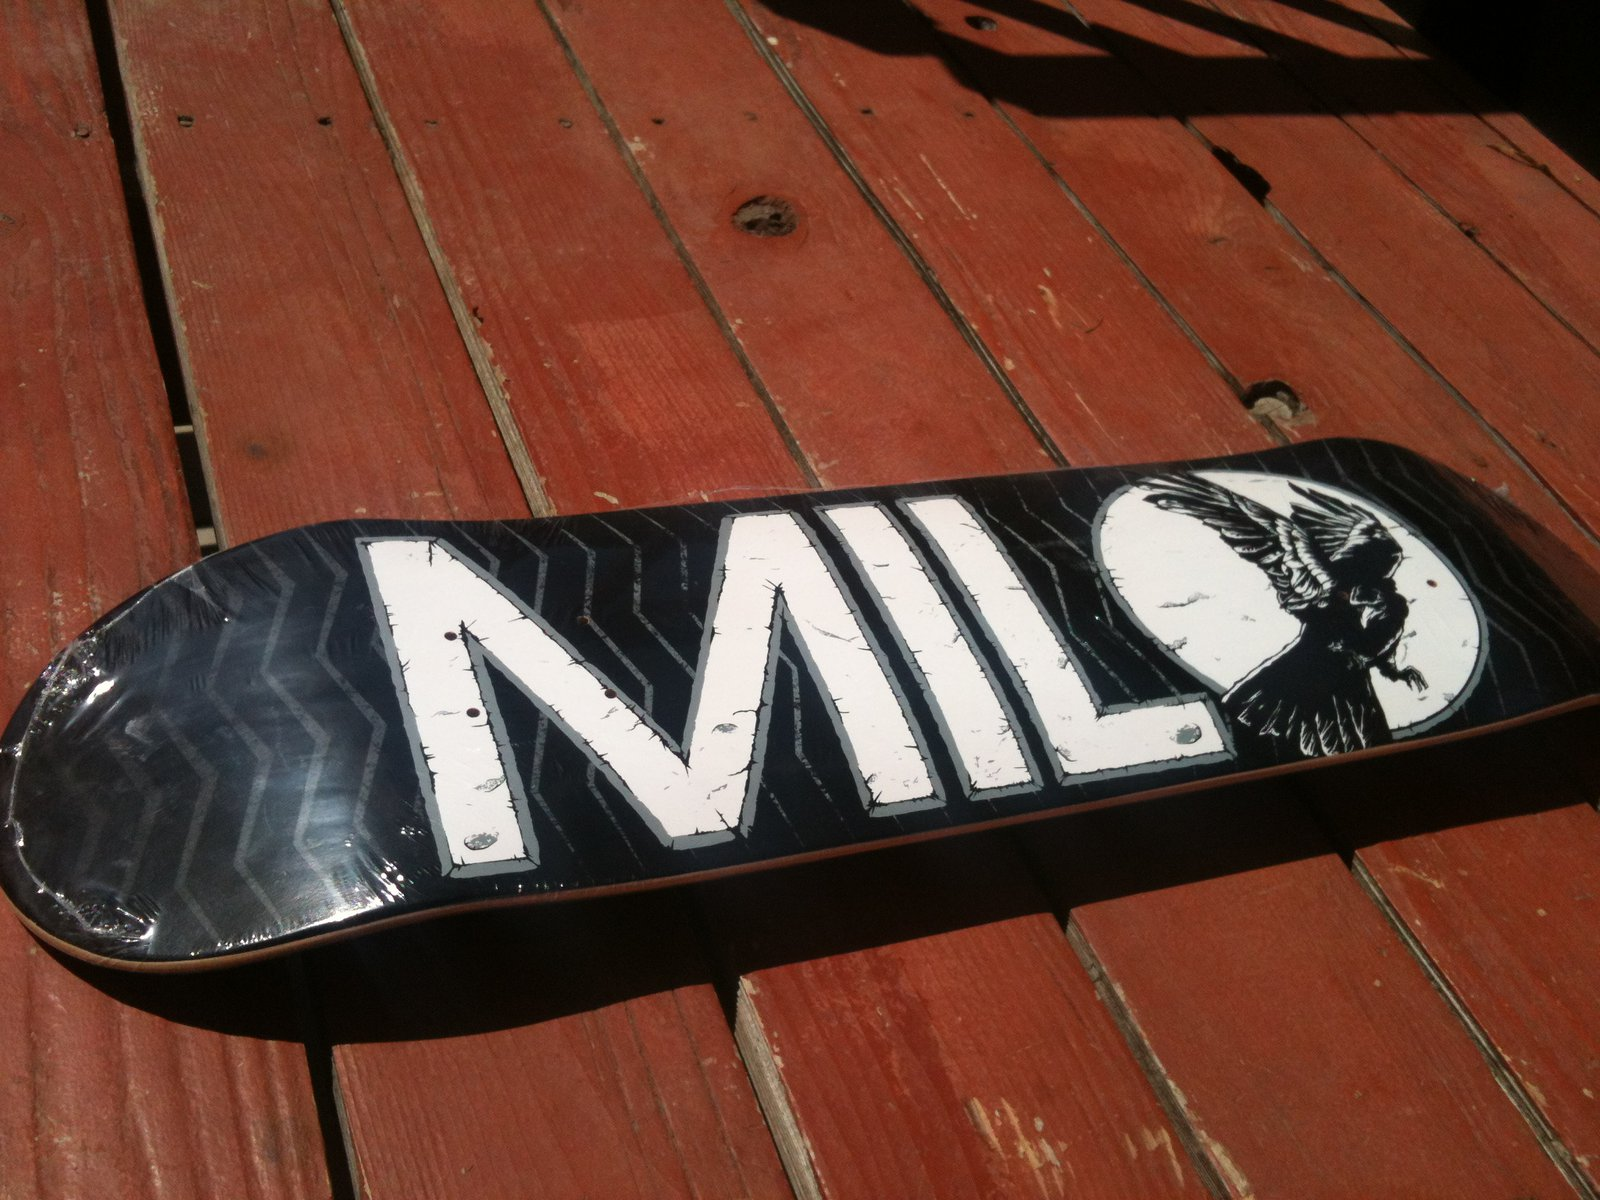 NEW (IN PLASTIC) Milo Skate Deck